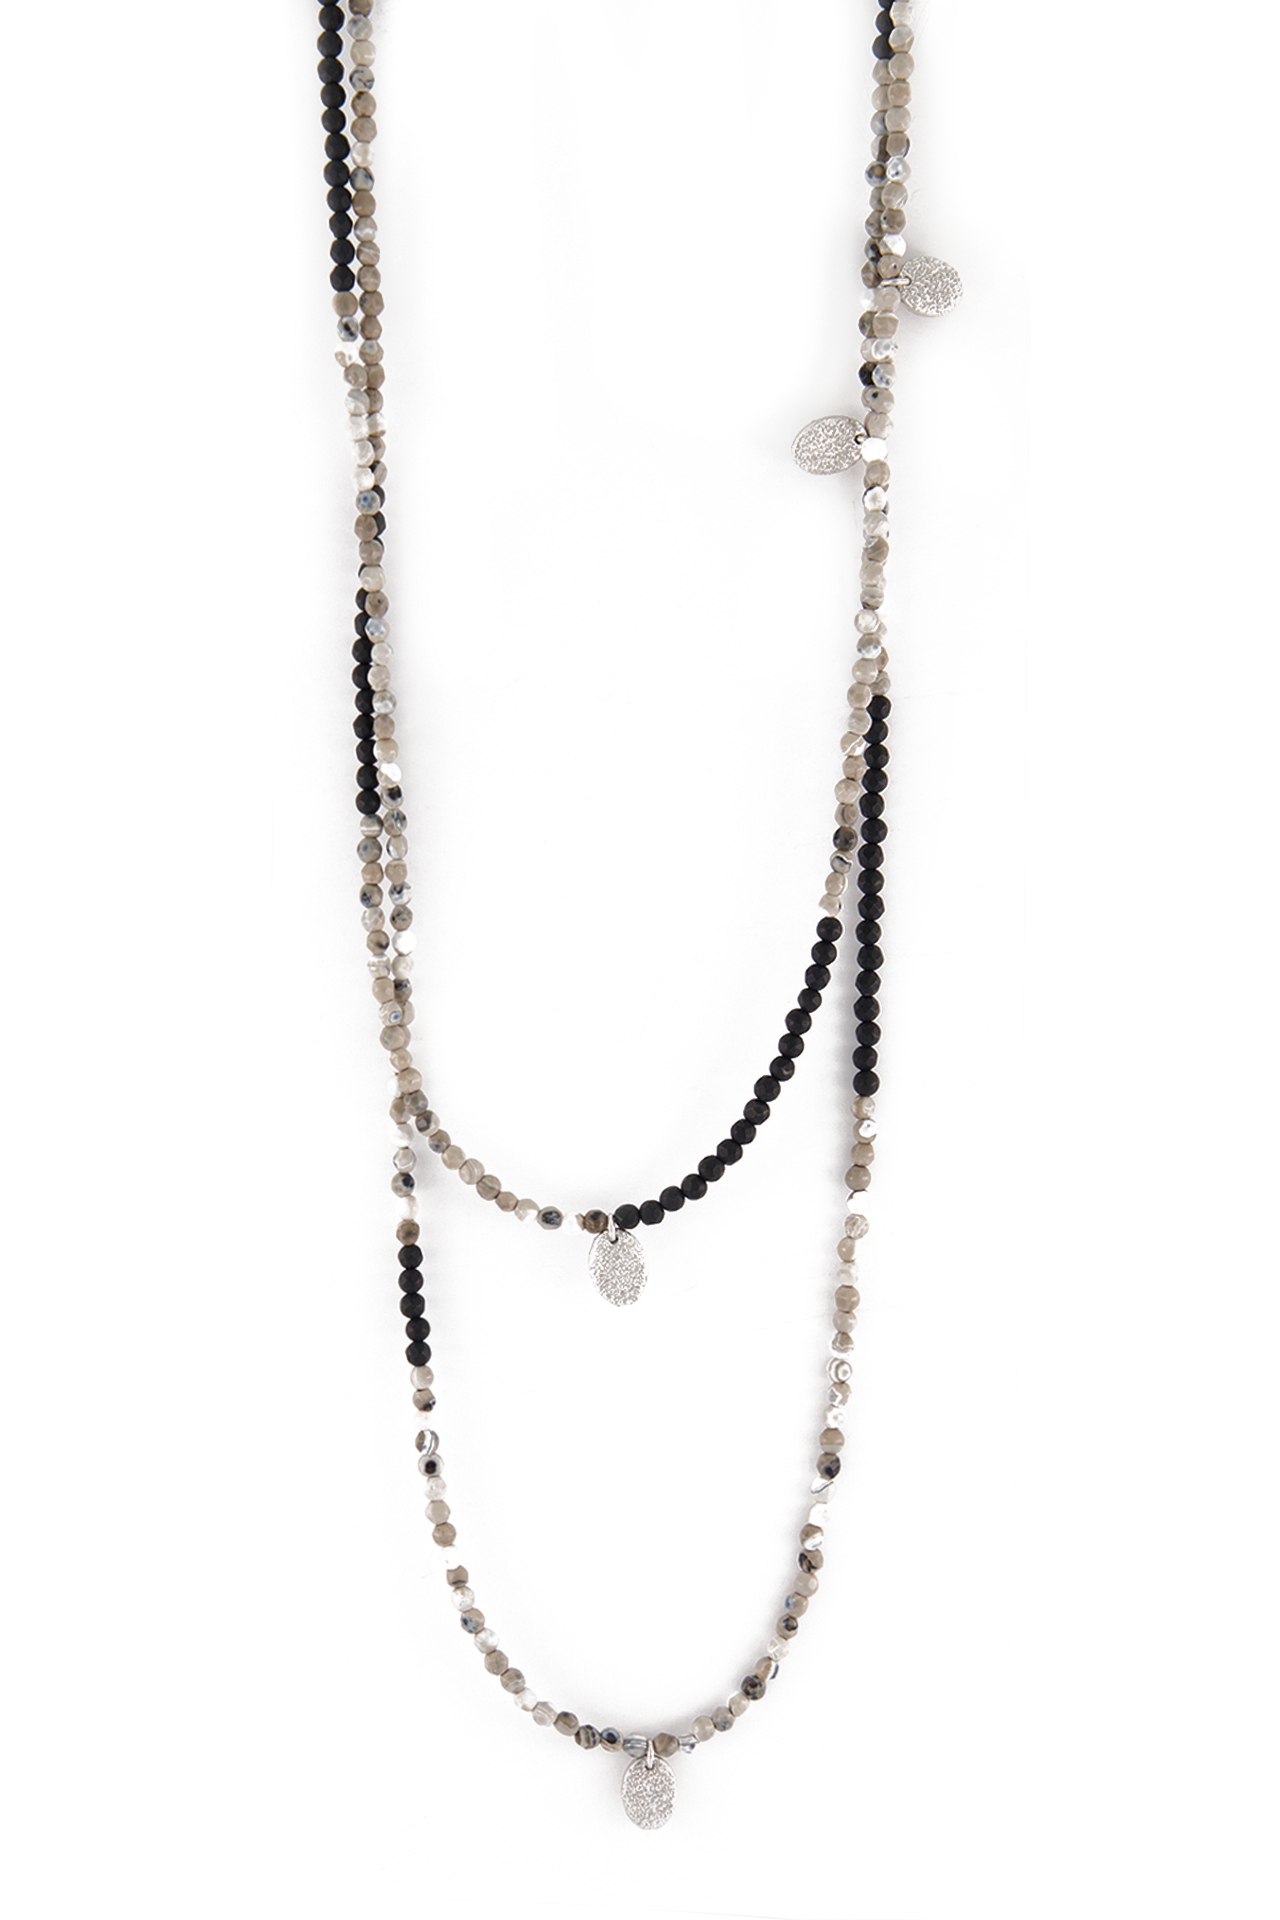 Front Image of Brunello Cucinelli Monili Agata Nera Necklace